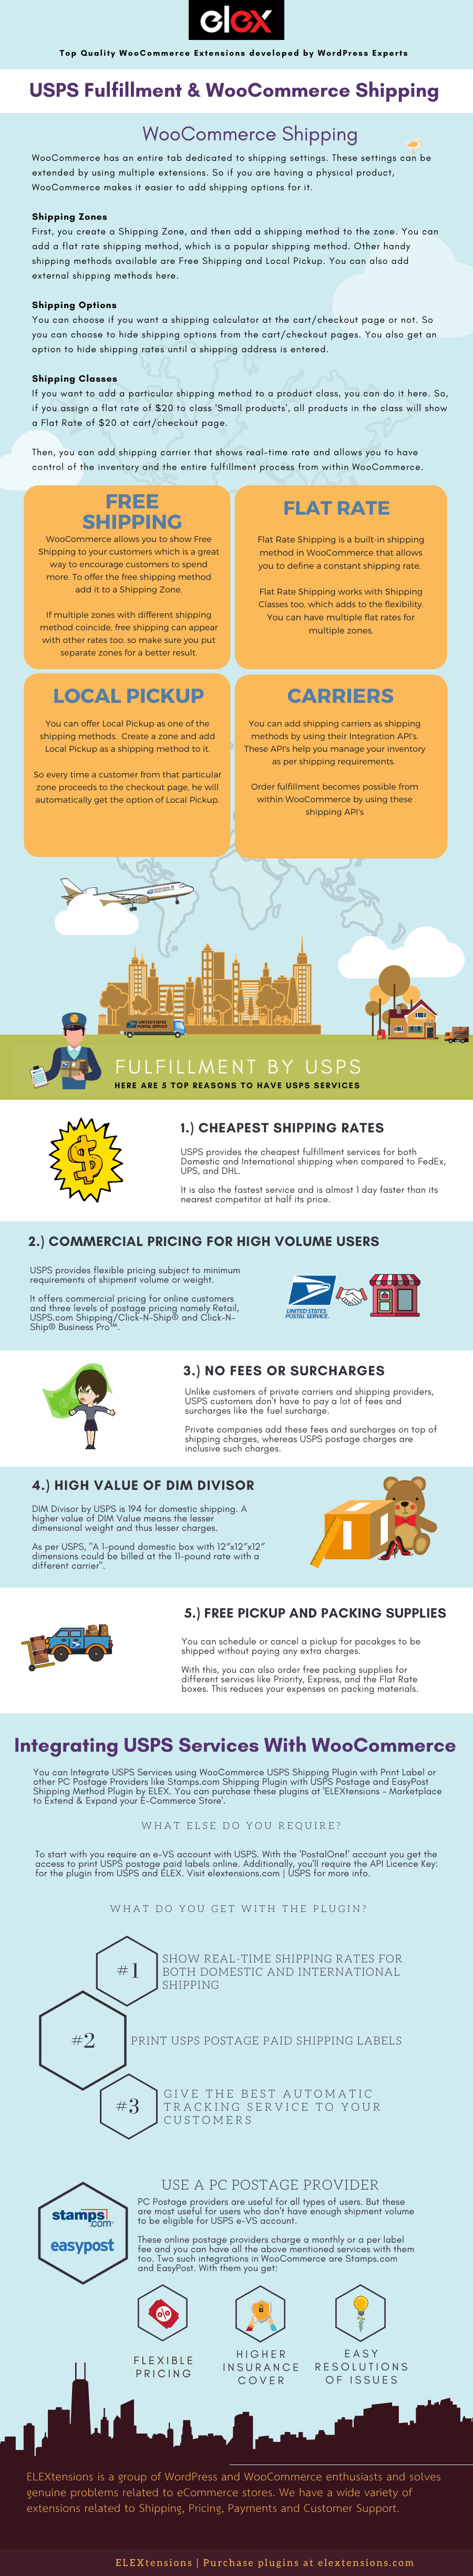 USPS Fulfillment and WooCommerce Shipping Info-graphic